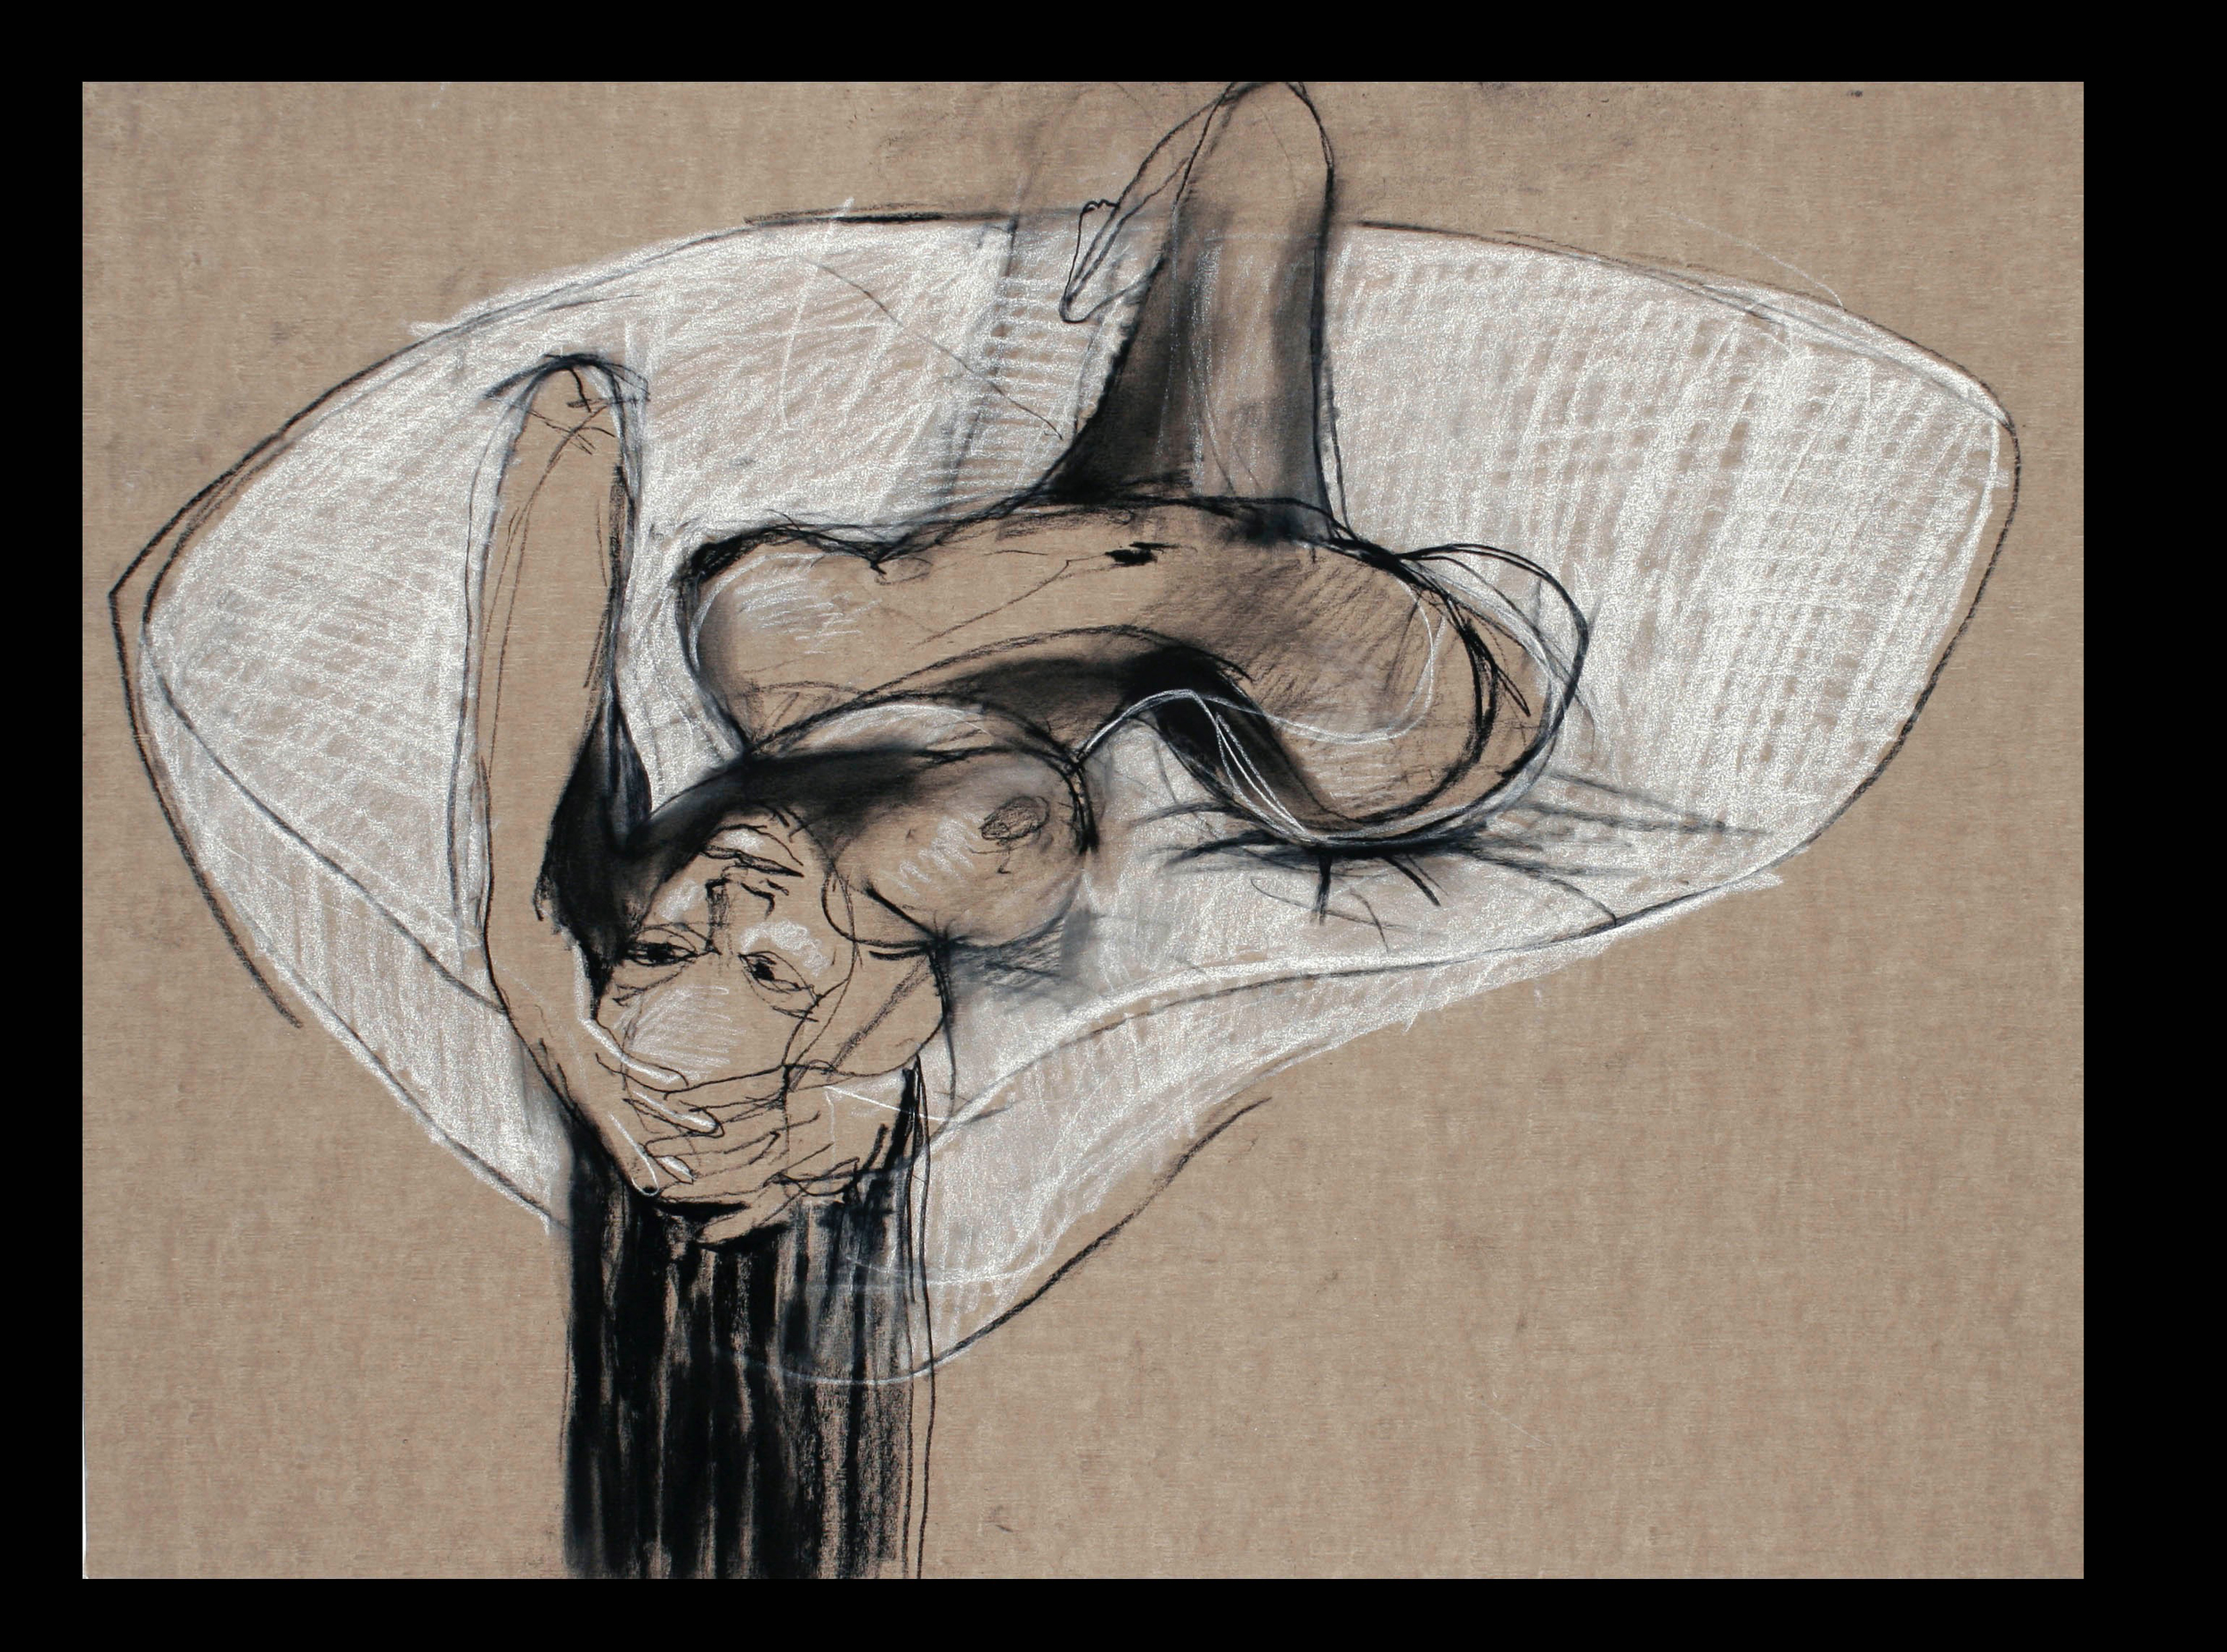 Charcoal on Belgian sandpaper  2005  22 x 30 Inches